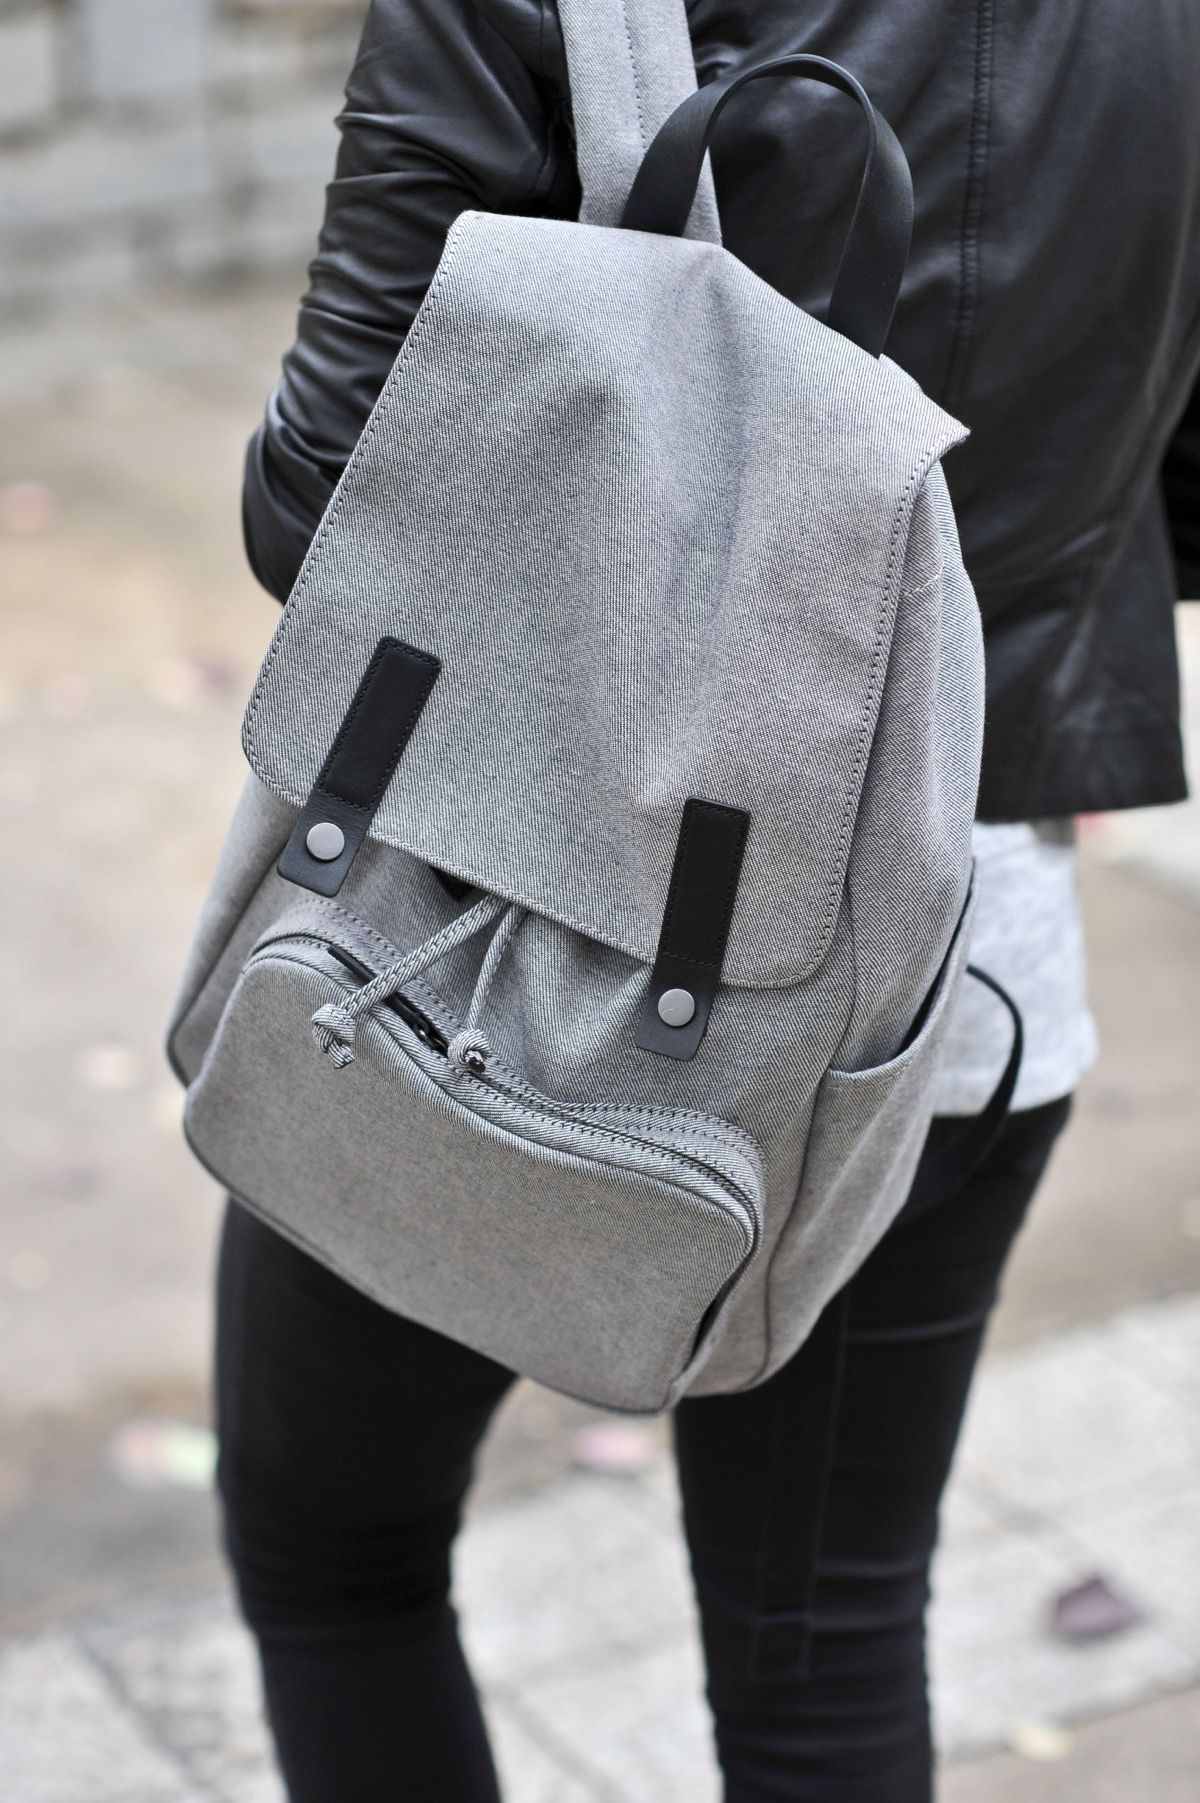 b71f4b3b5678 The Best Everyday Affordable Backpack And How To Style It ...